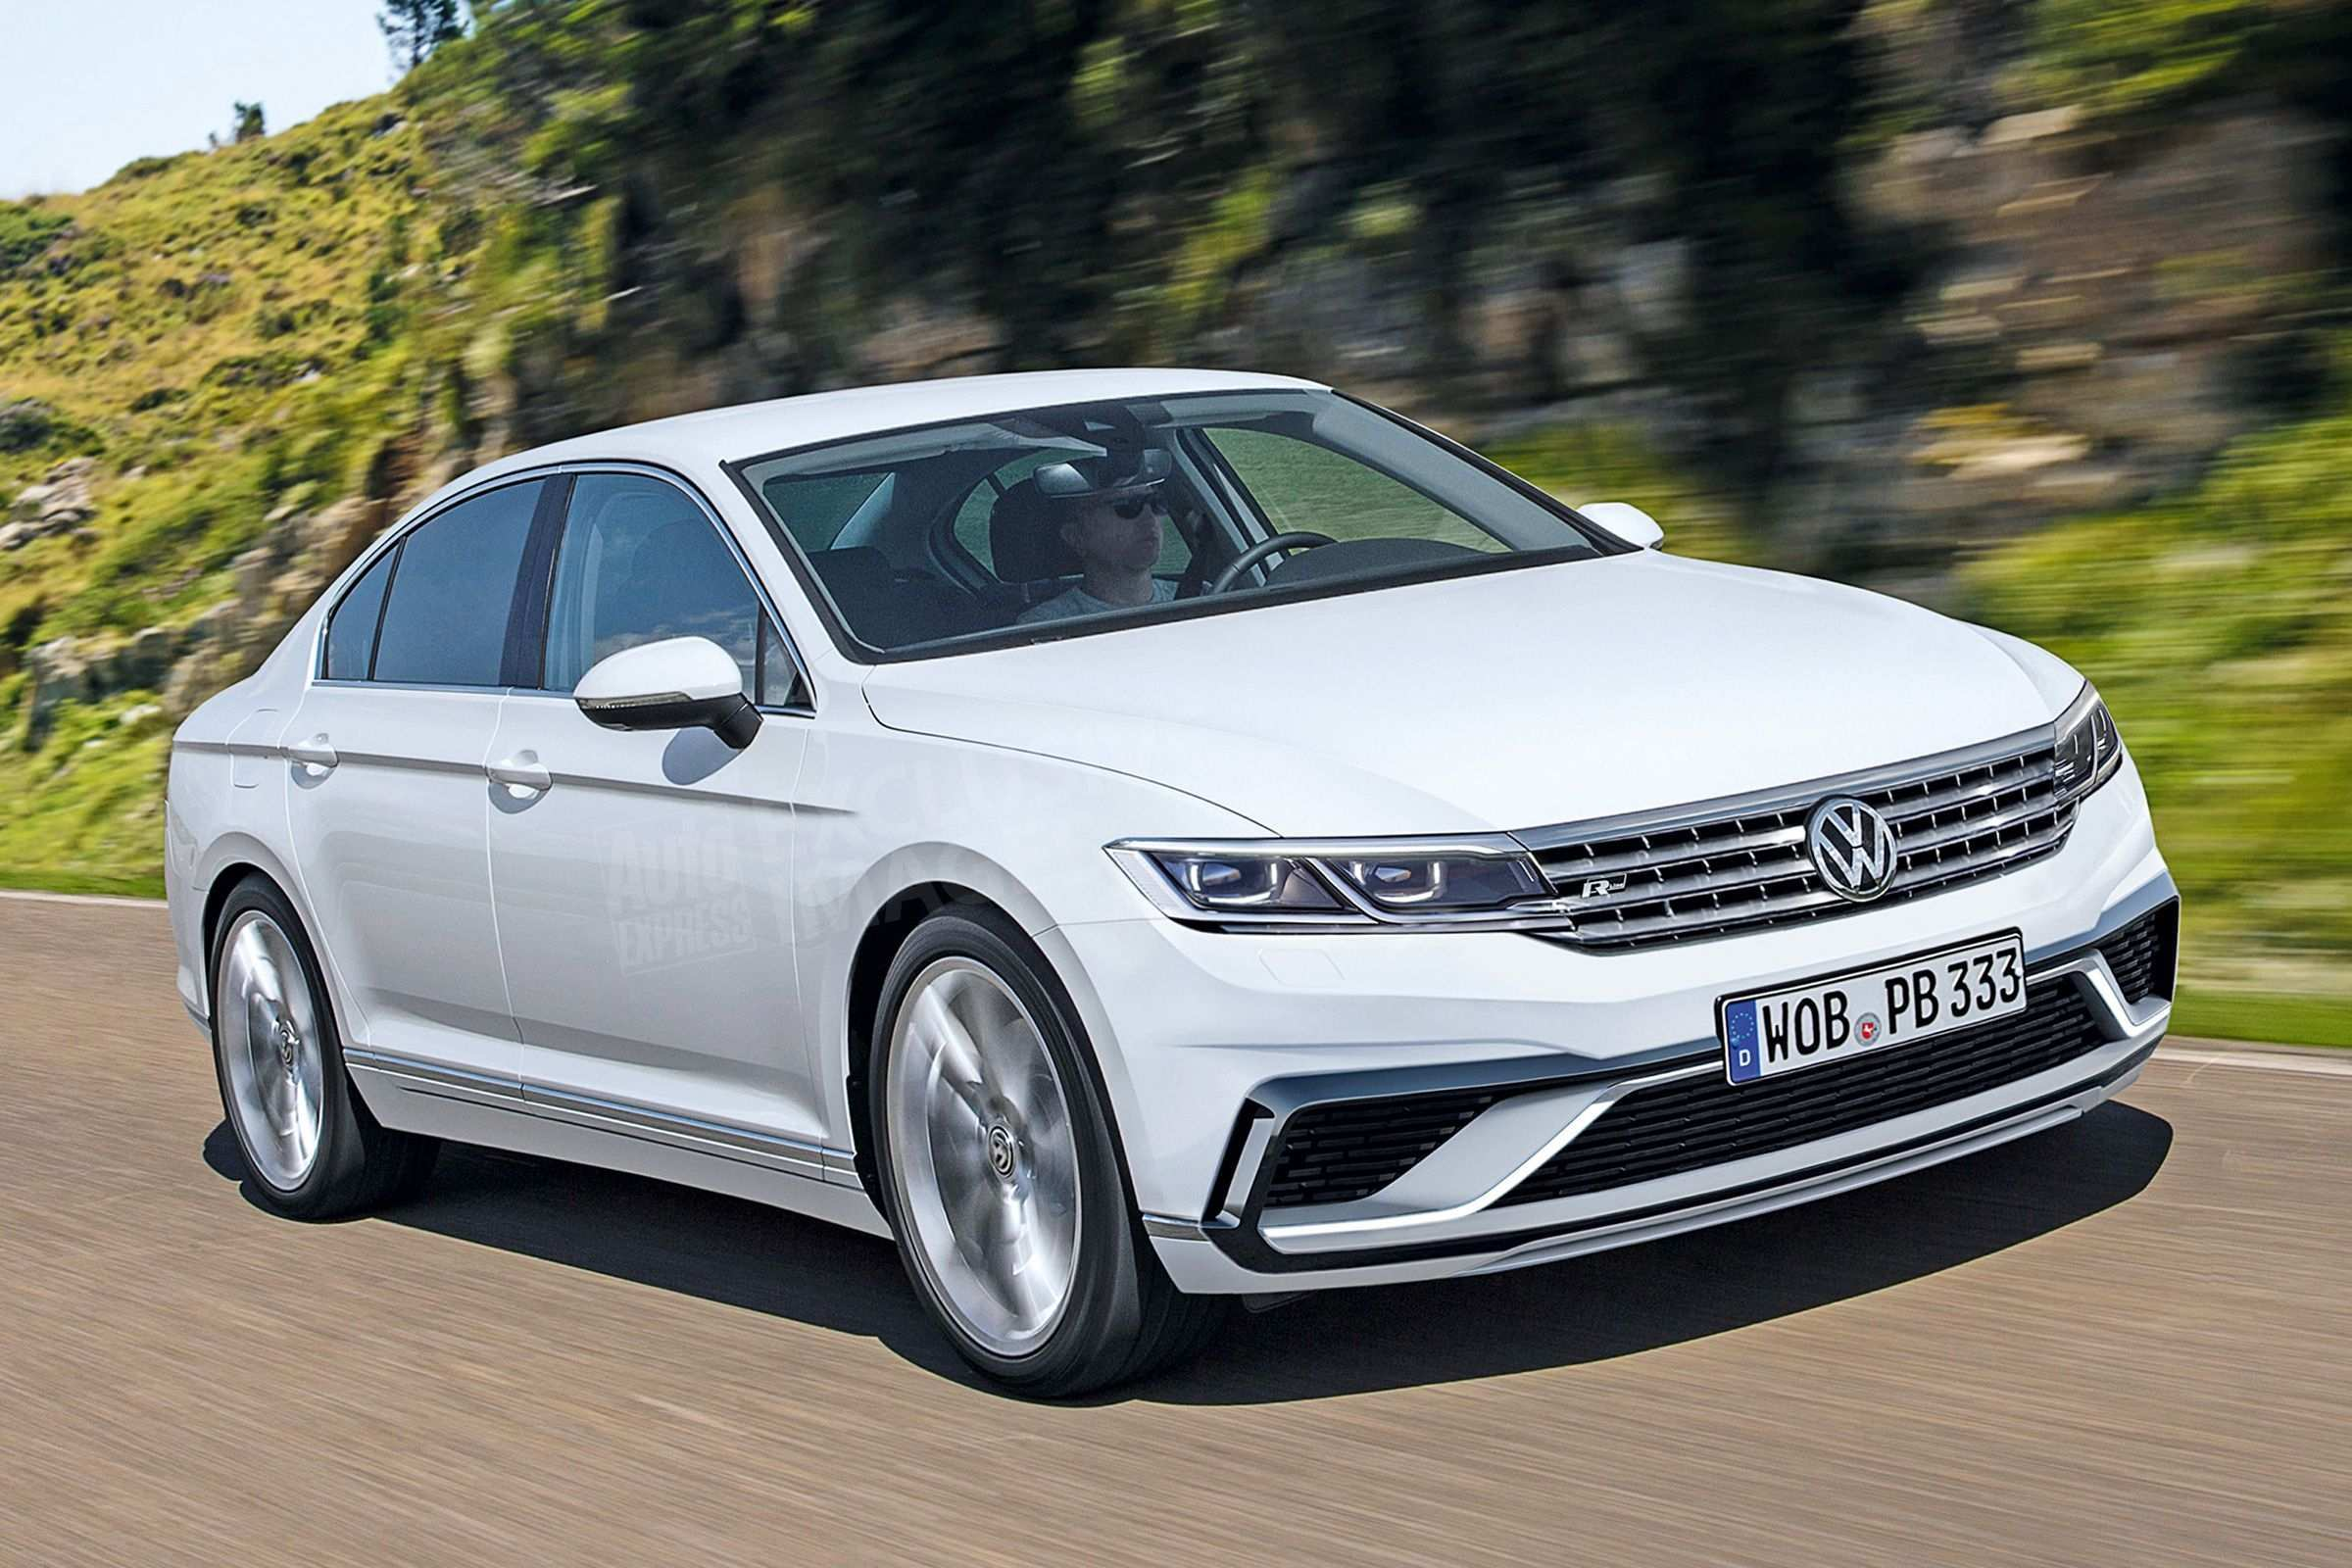 83 Gallery of Volkswagen Hybrid 2019 Performance And New Engine Performance and New Engine with Volkswagen Hybrid 2019 Performance And New Engine